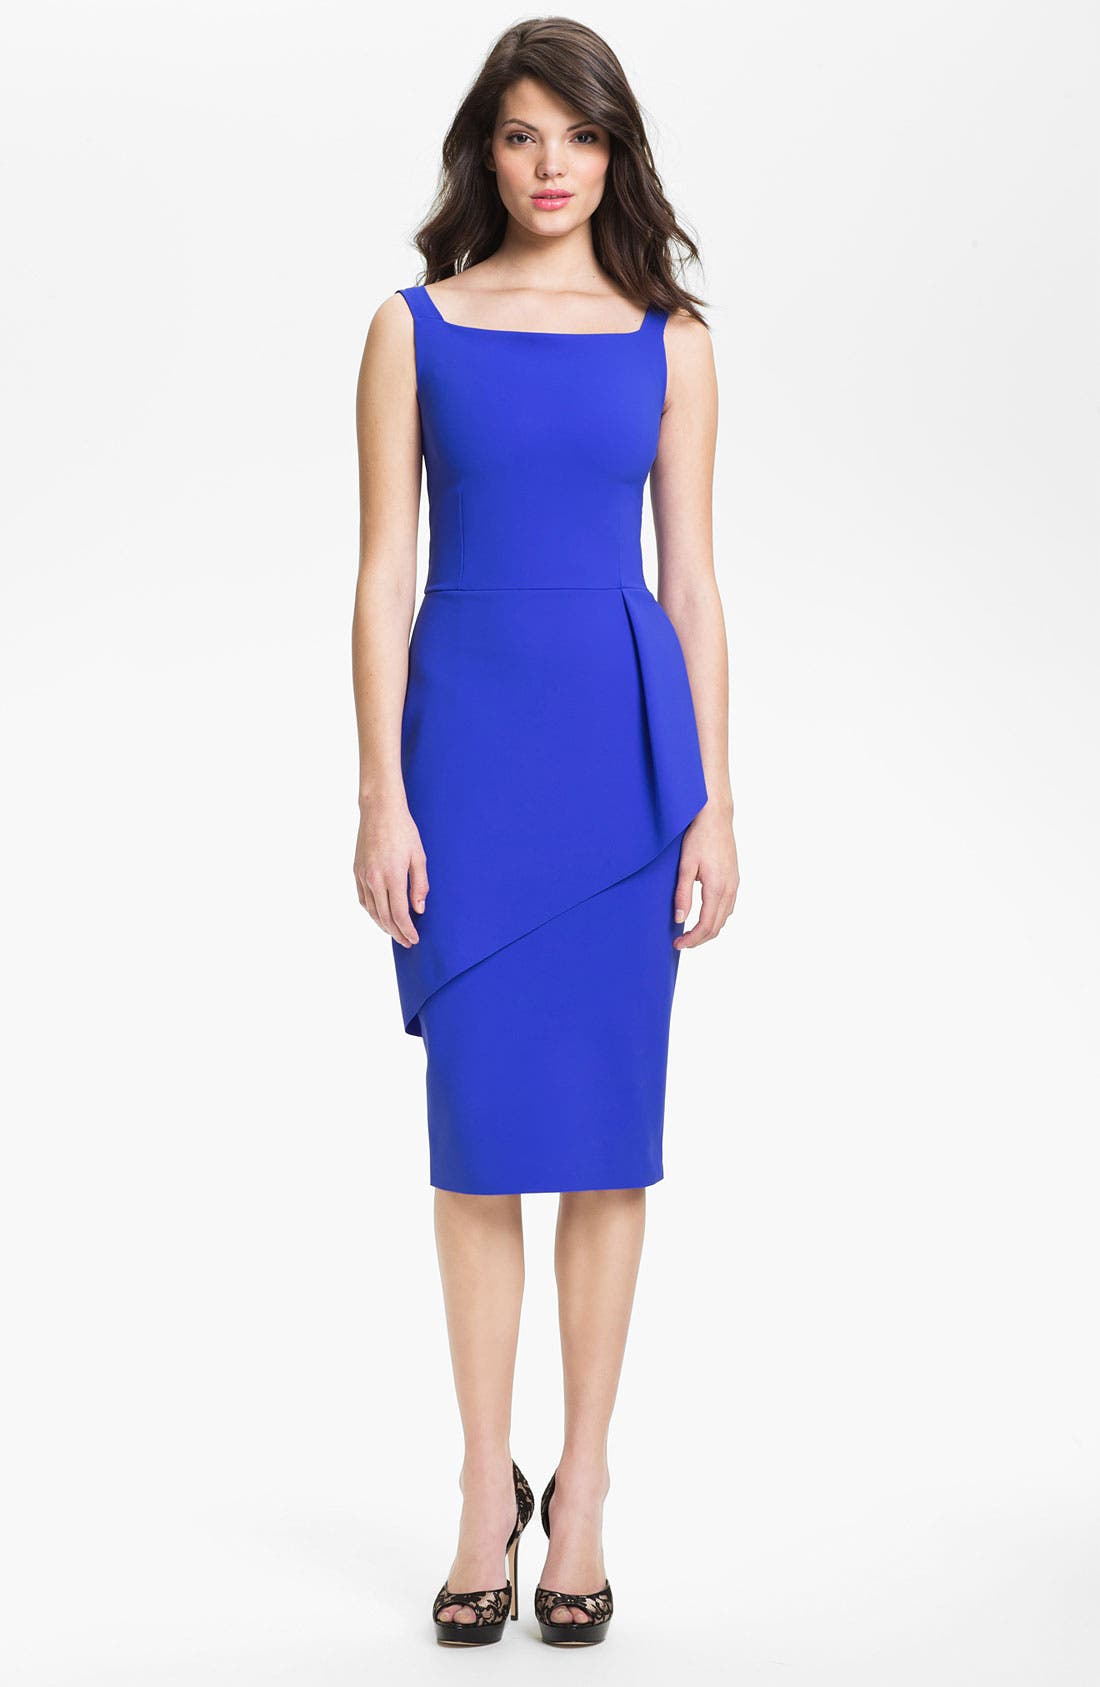 Main Image - La Petite Robe by Chiara Boni Layered Sheath Dress